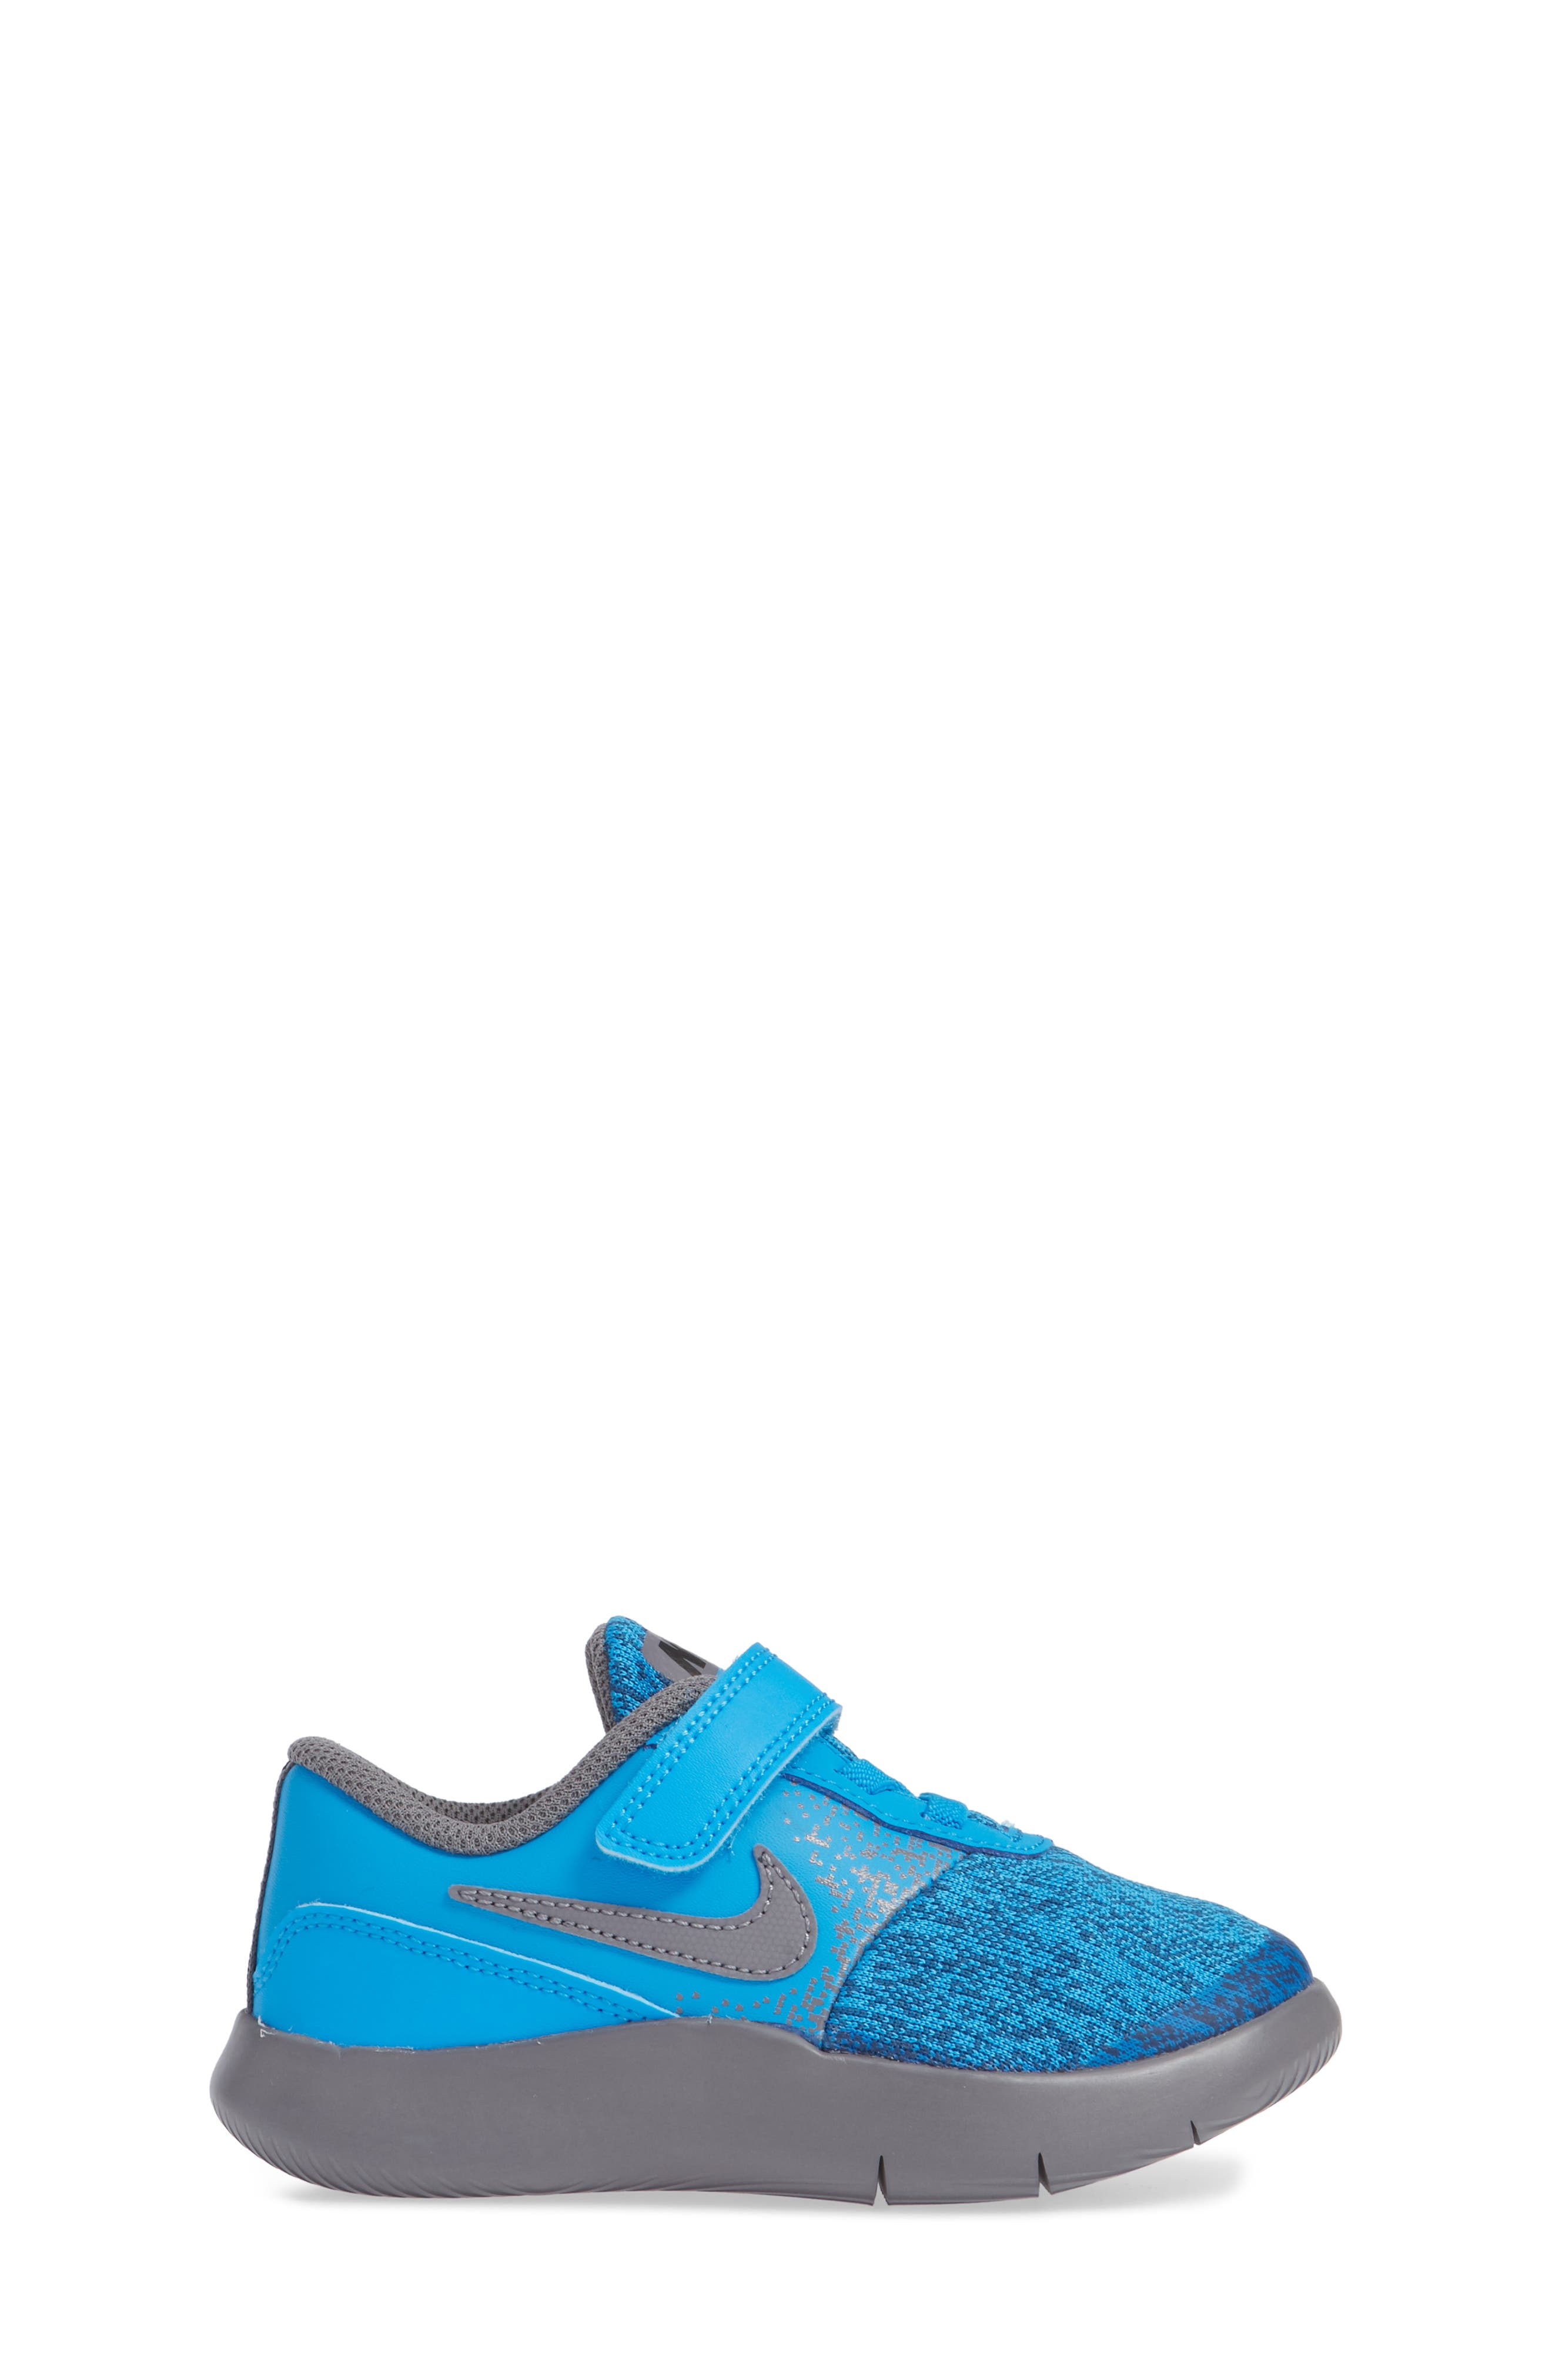 Flex Contact Running Shoe,                             Alternate thumbnail 3, color,                             BLUE HERO/ GUNSMOKE/ GREEN